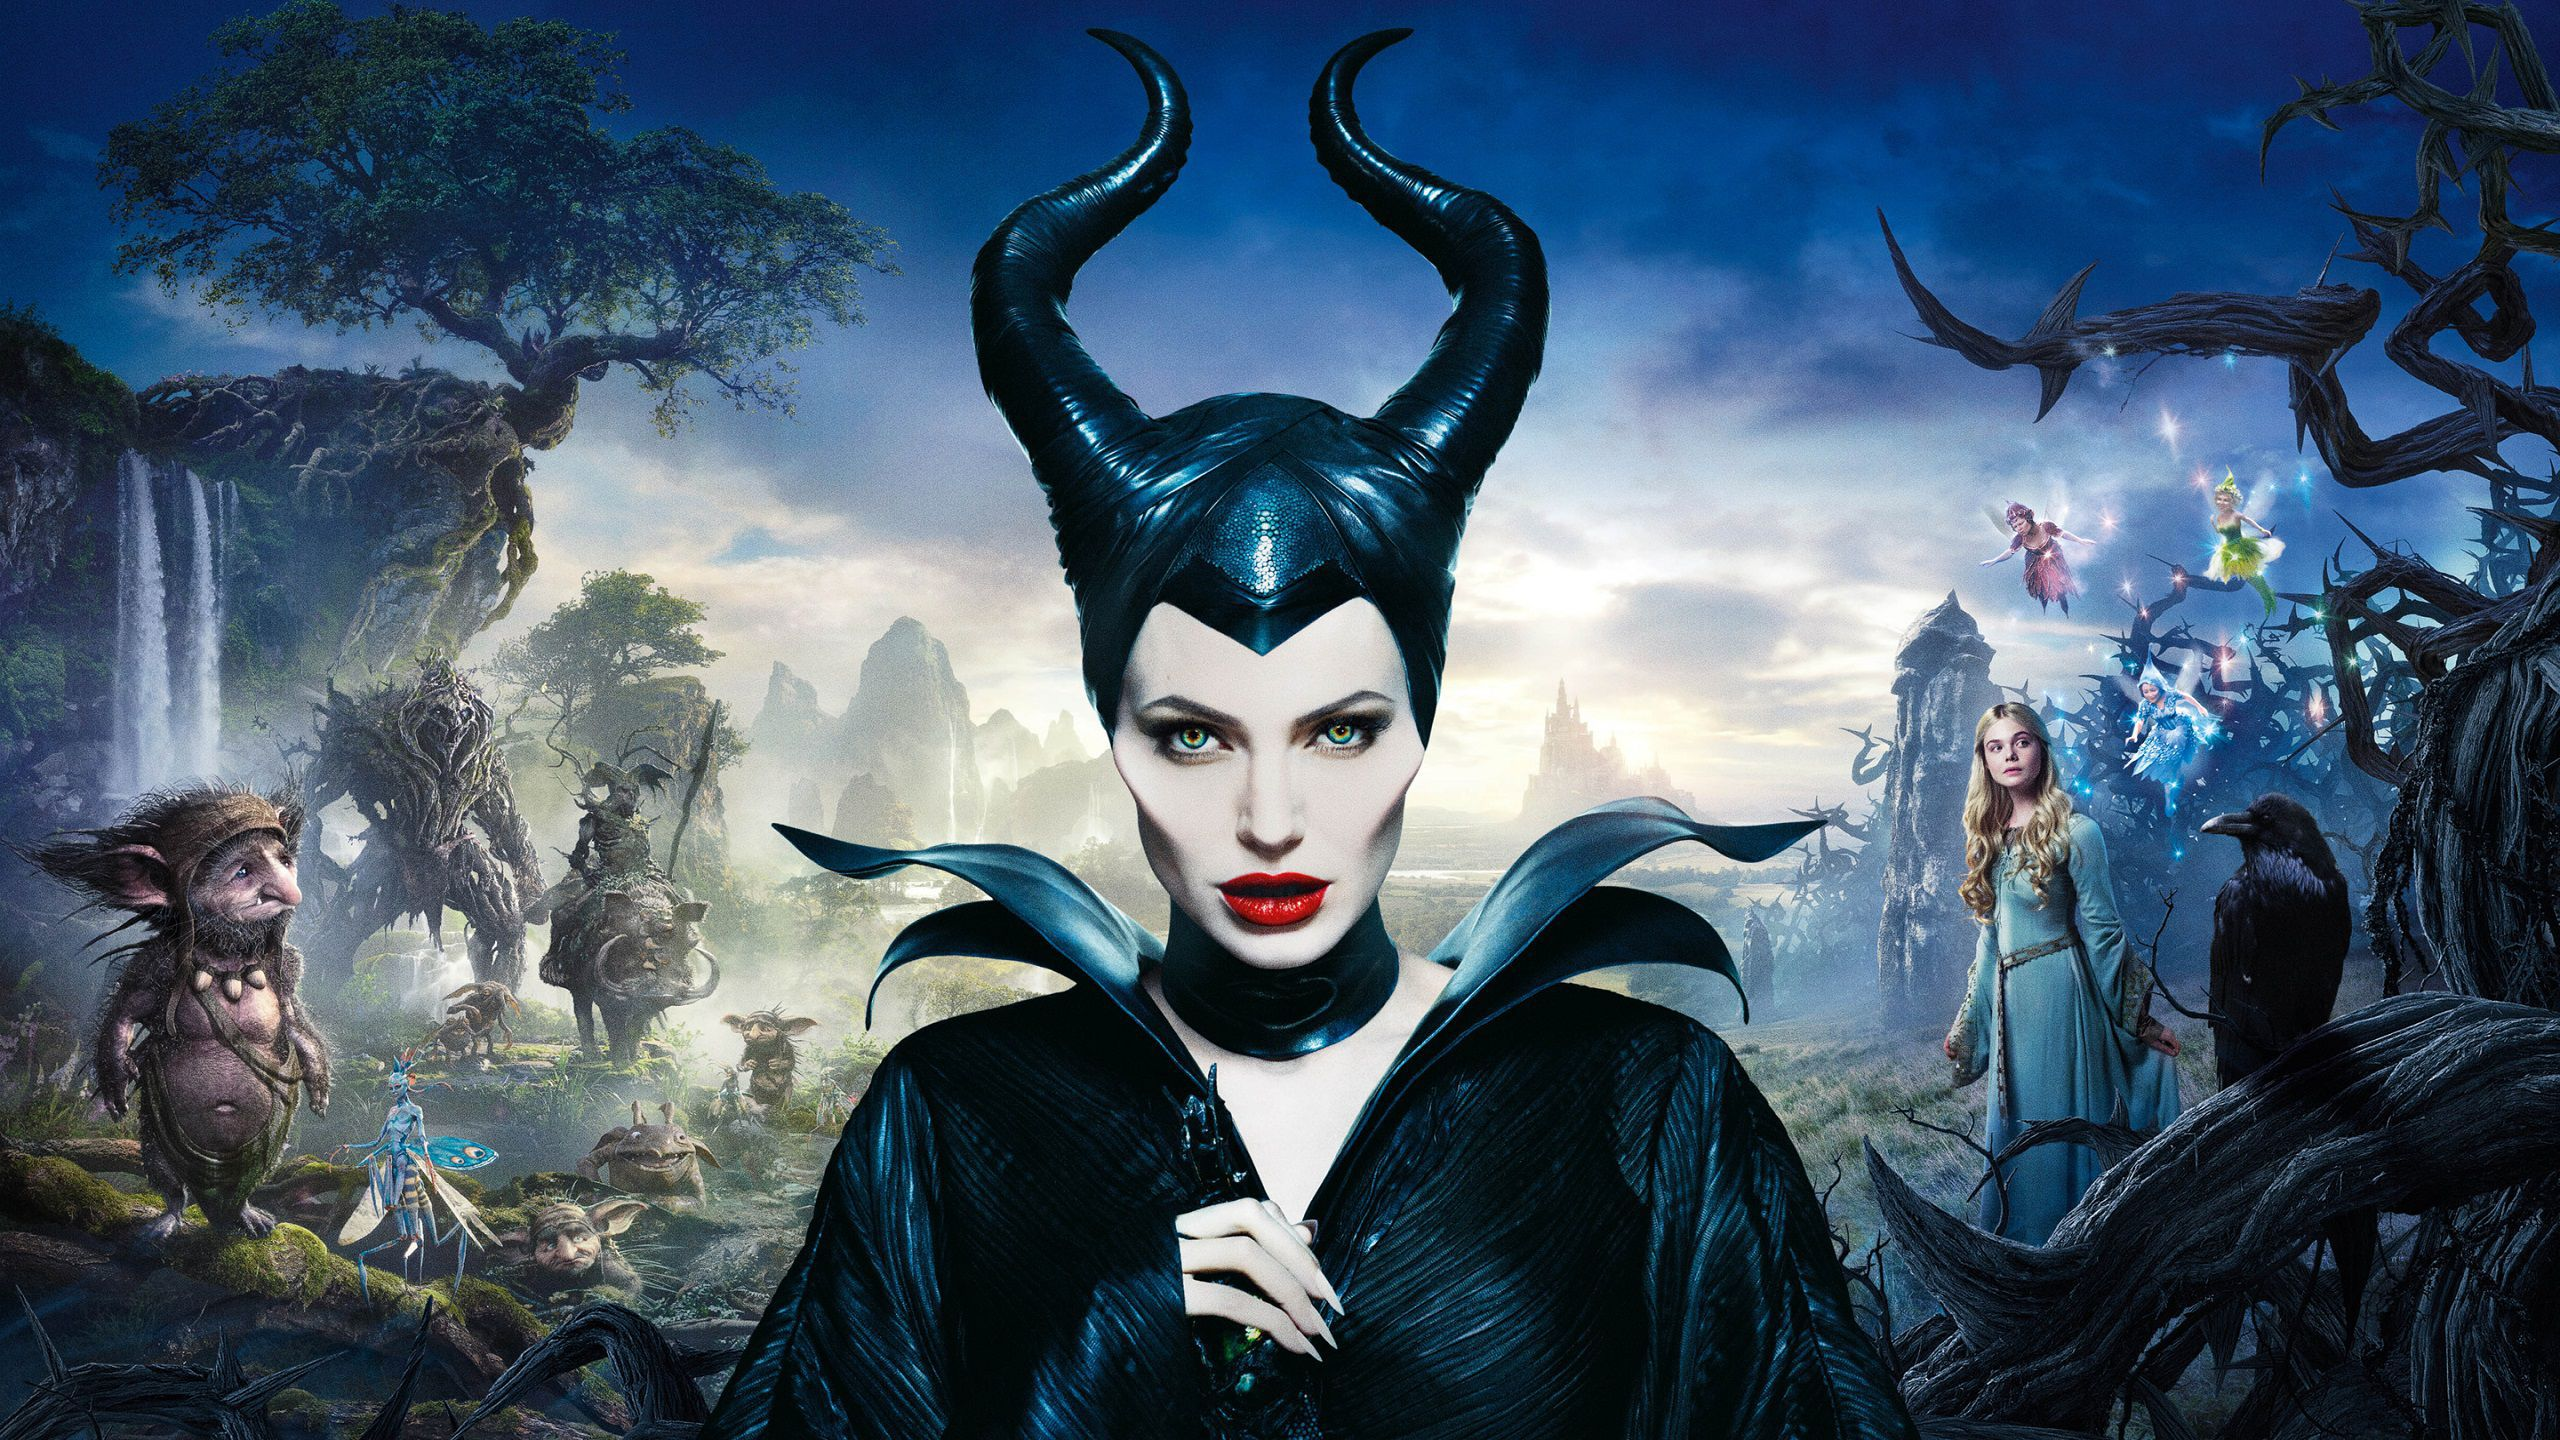 Maleficent wallpaper and Poster